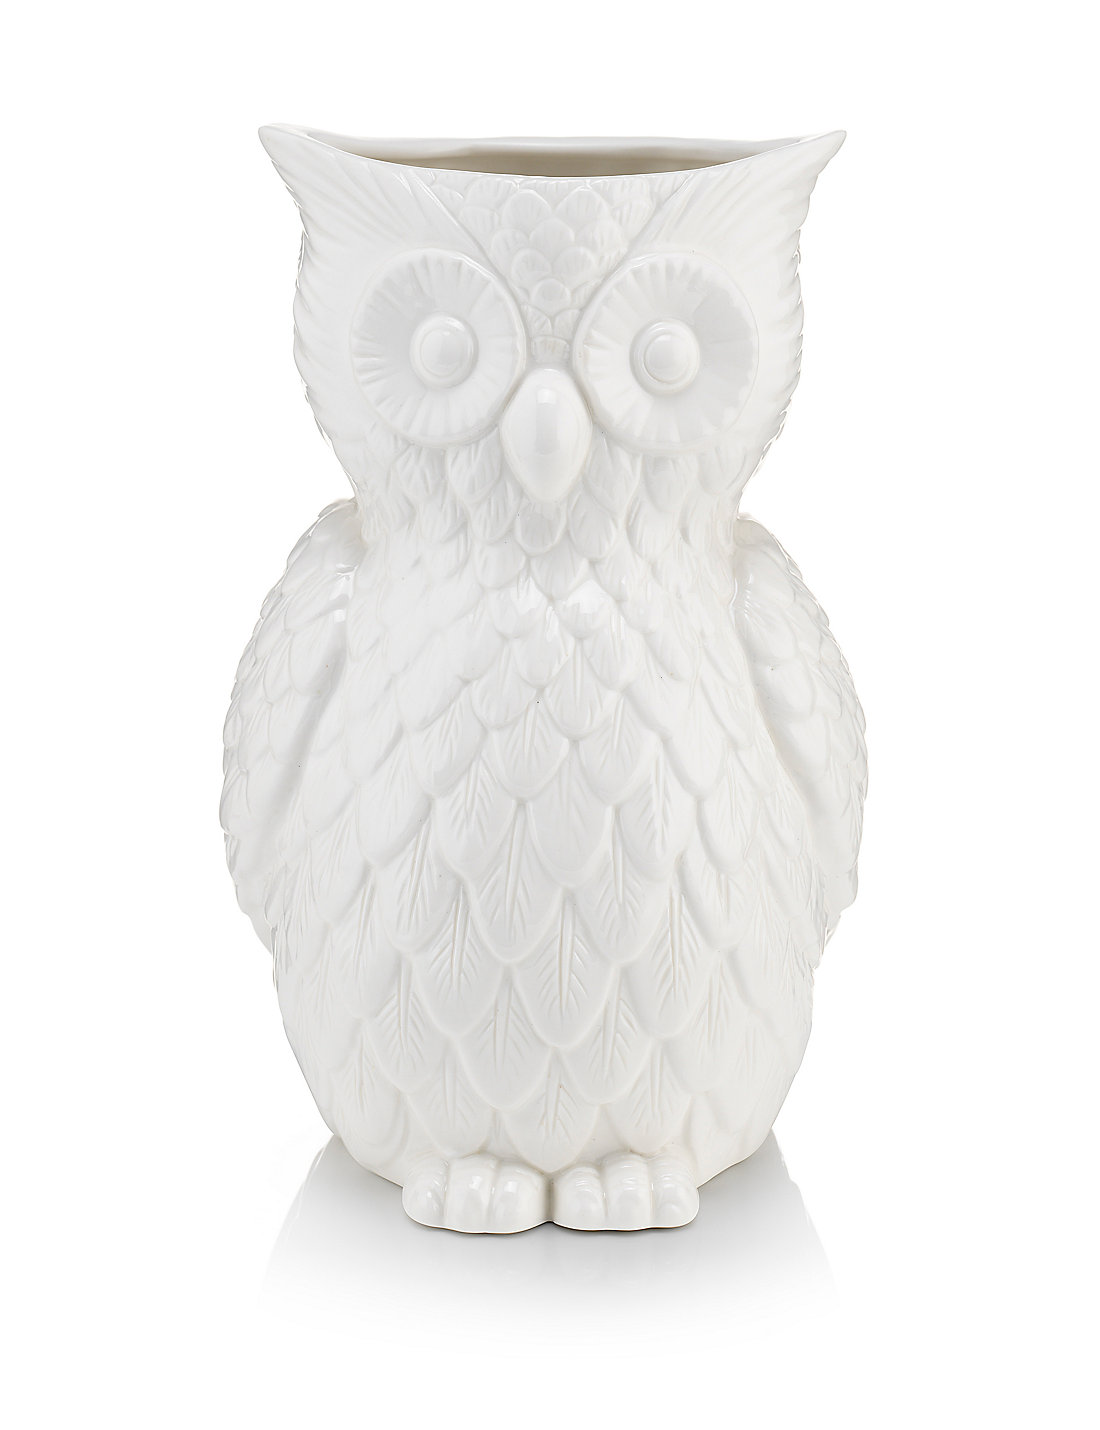 Owl vase ms owl vase reviewsmspy